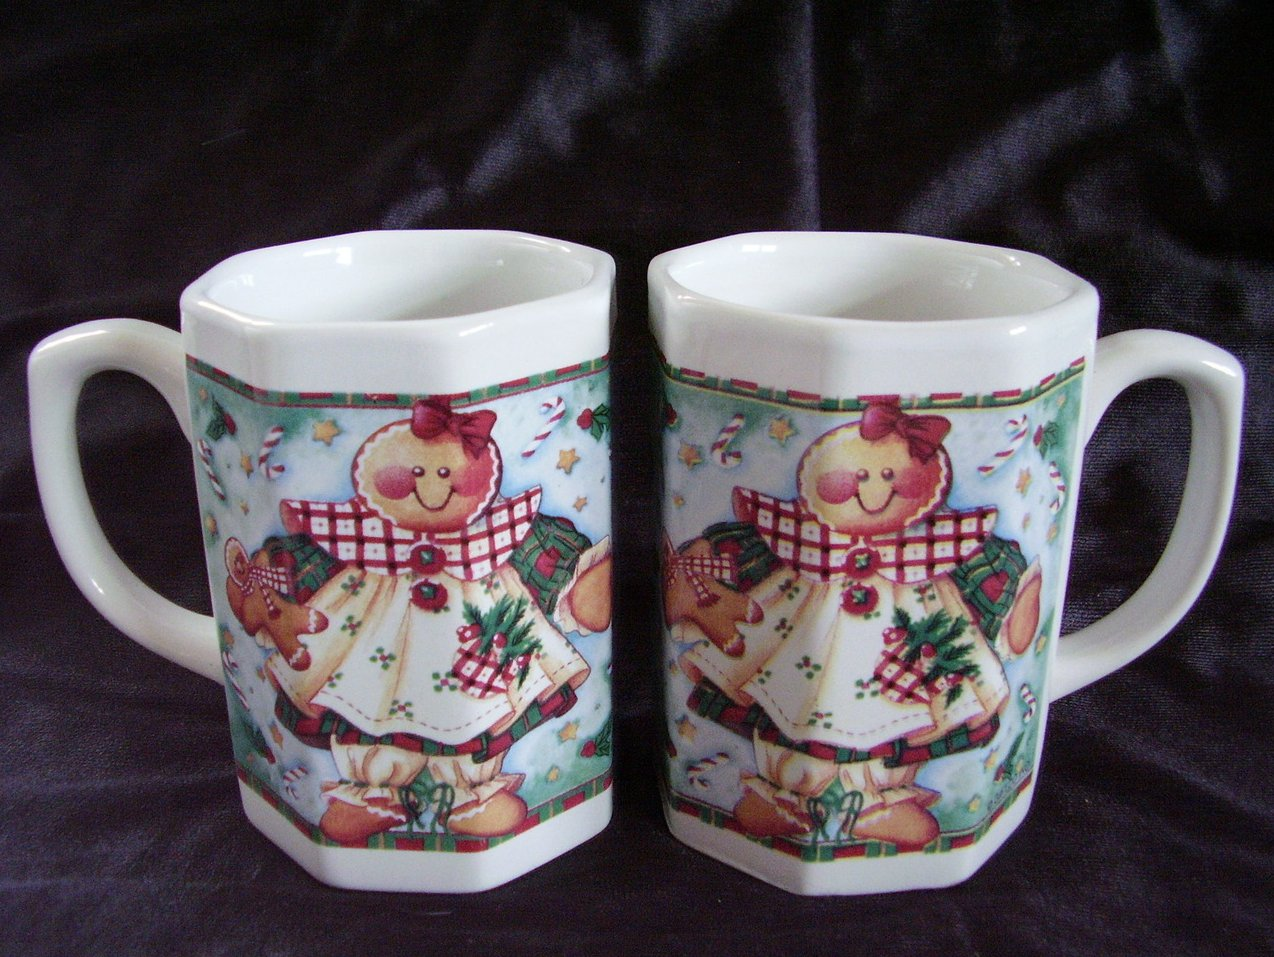 2 Ceramic Christmas mugs